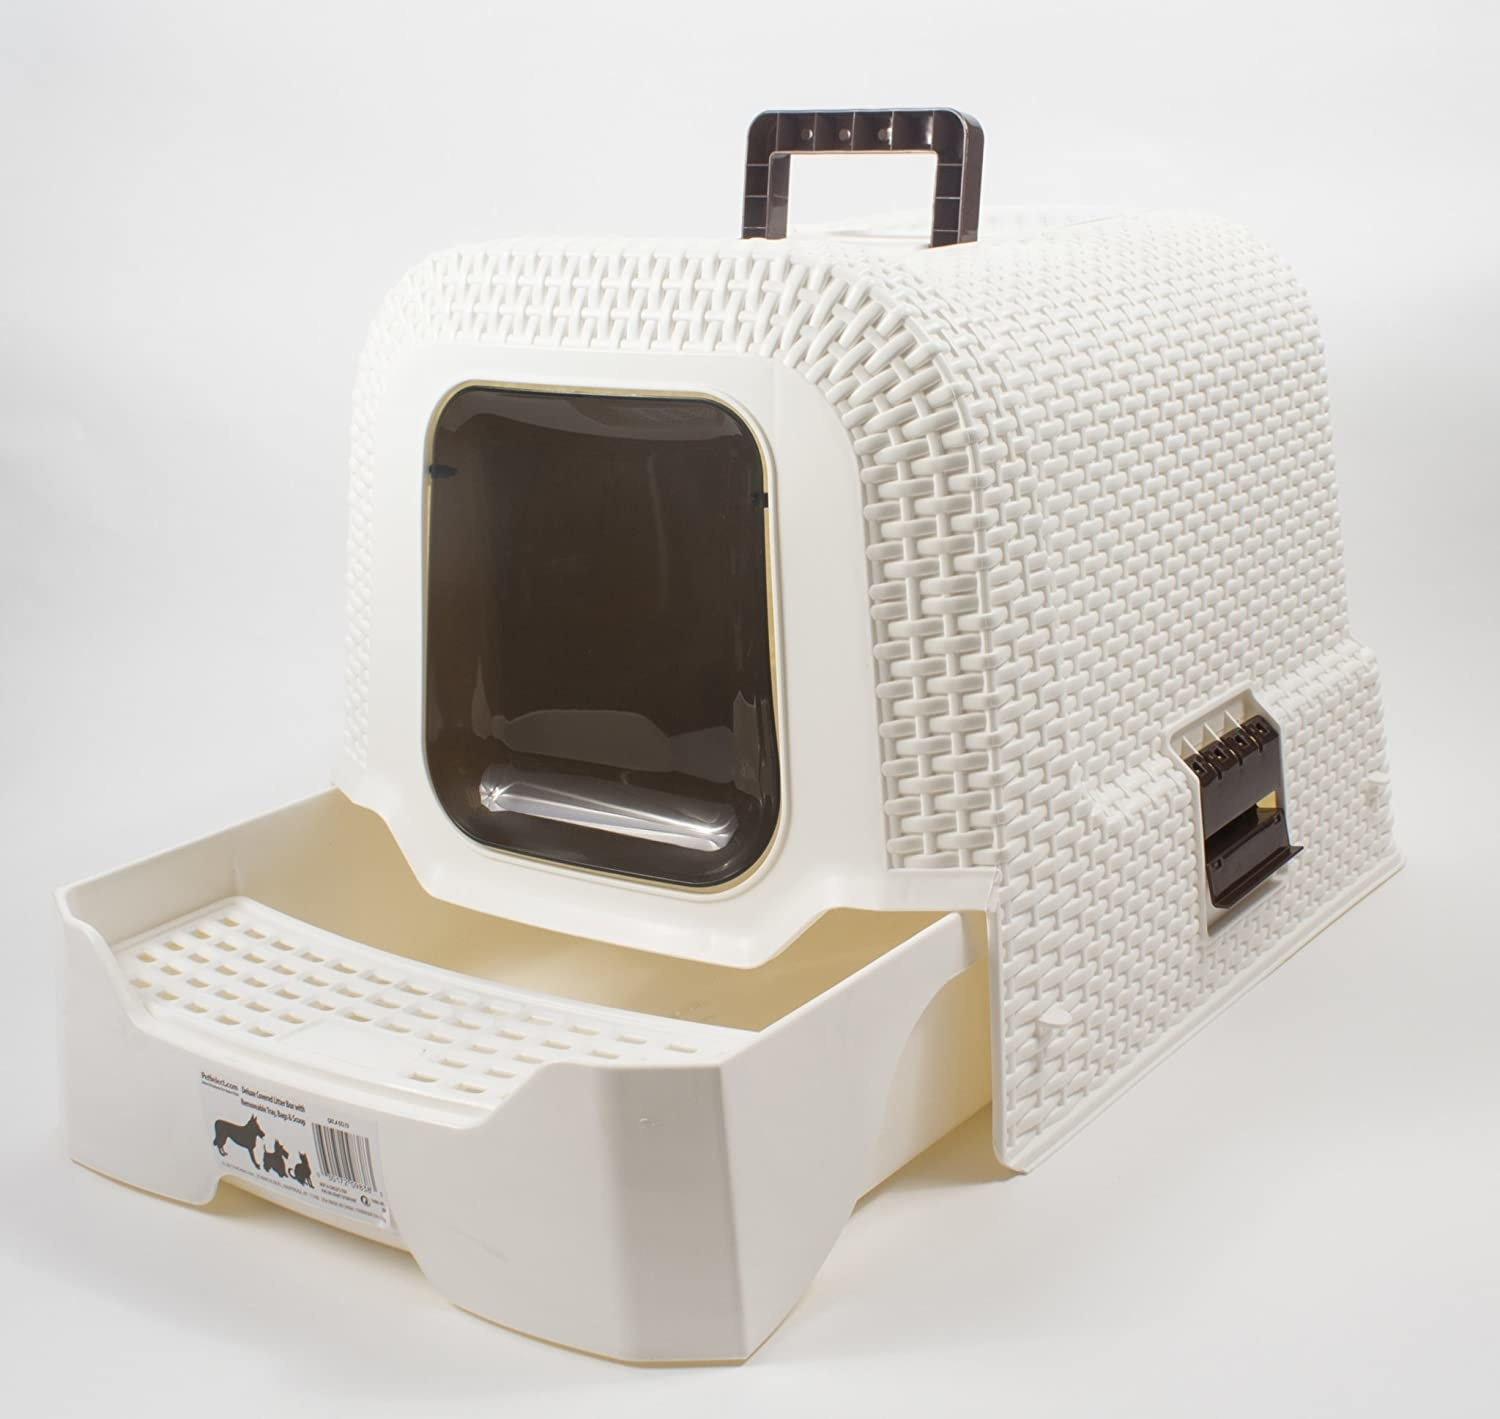 Covered litter box made of thick plastic with woven pattern, closed doggy door, and handle for carrying. It has a litter catcher step in front of the doggy door.